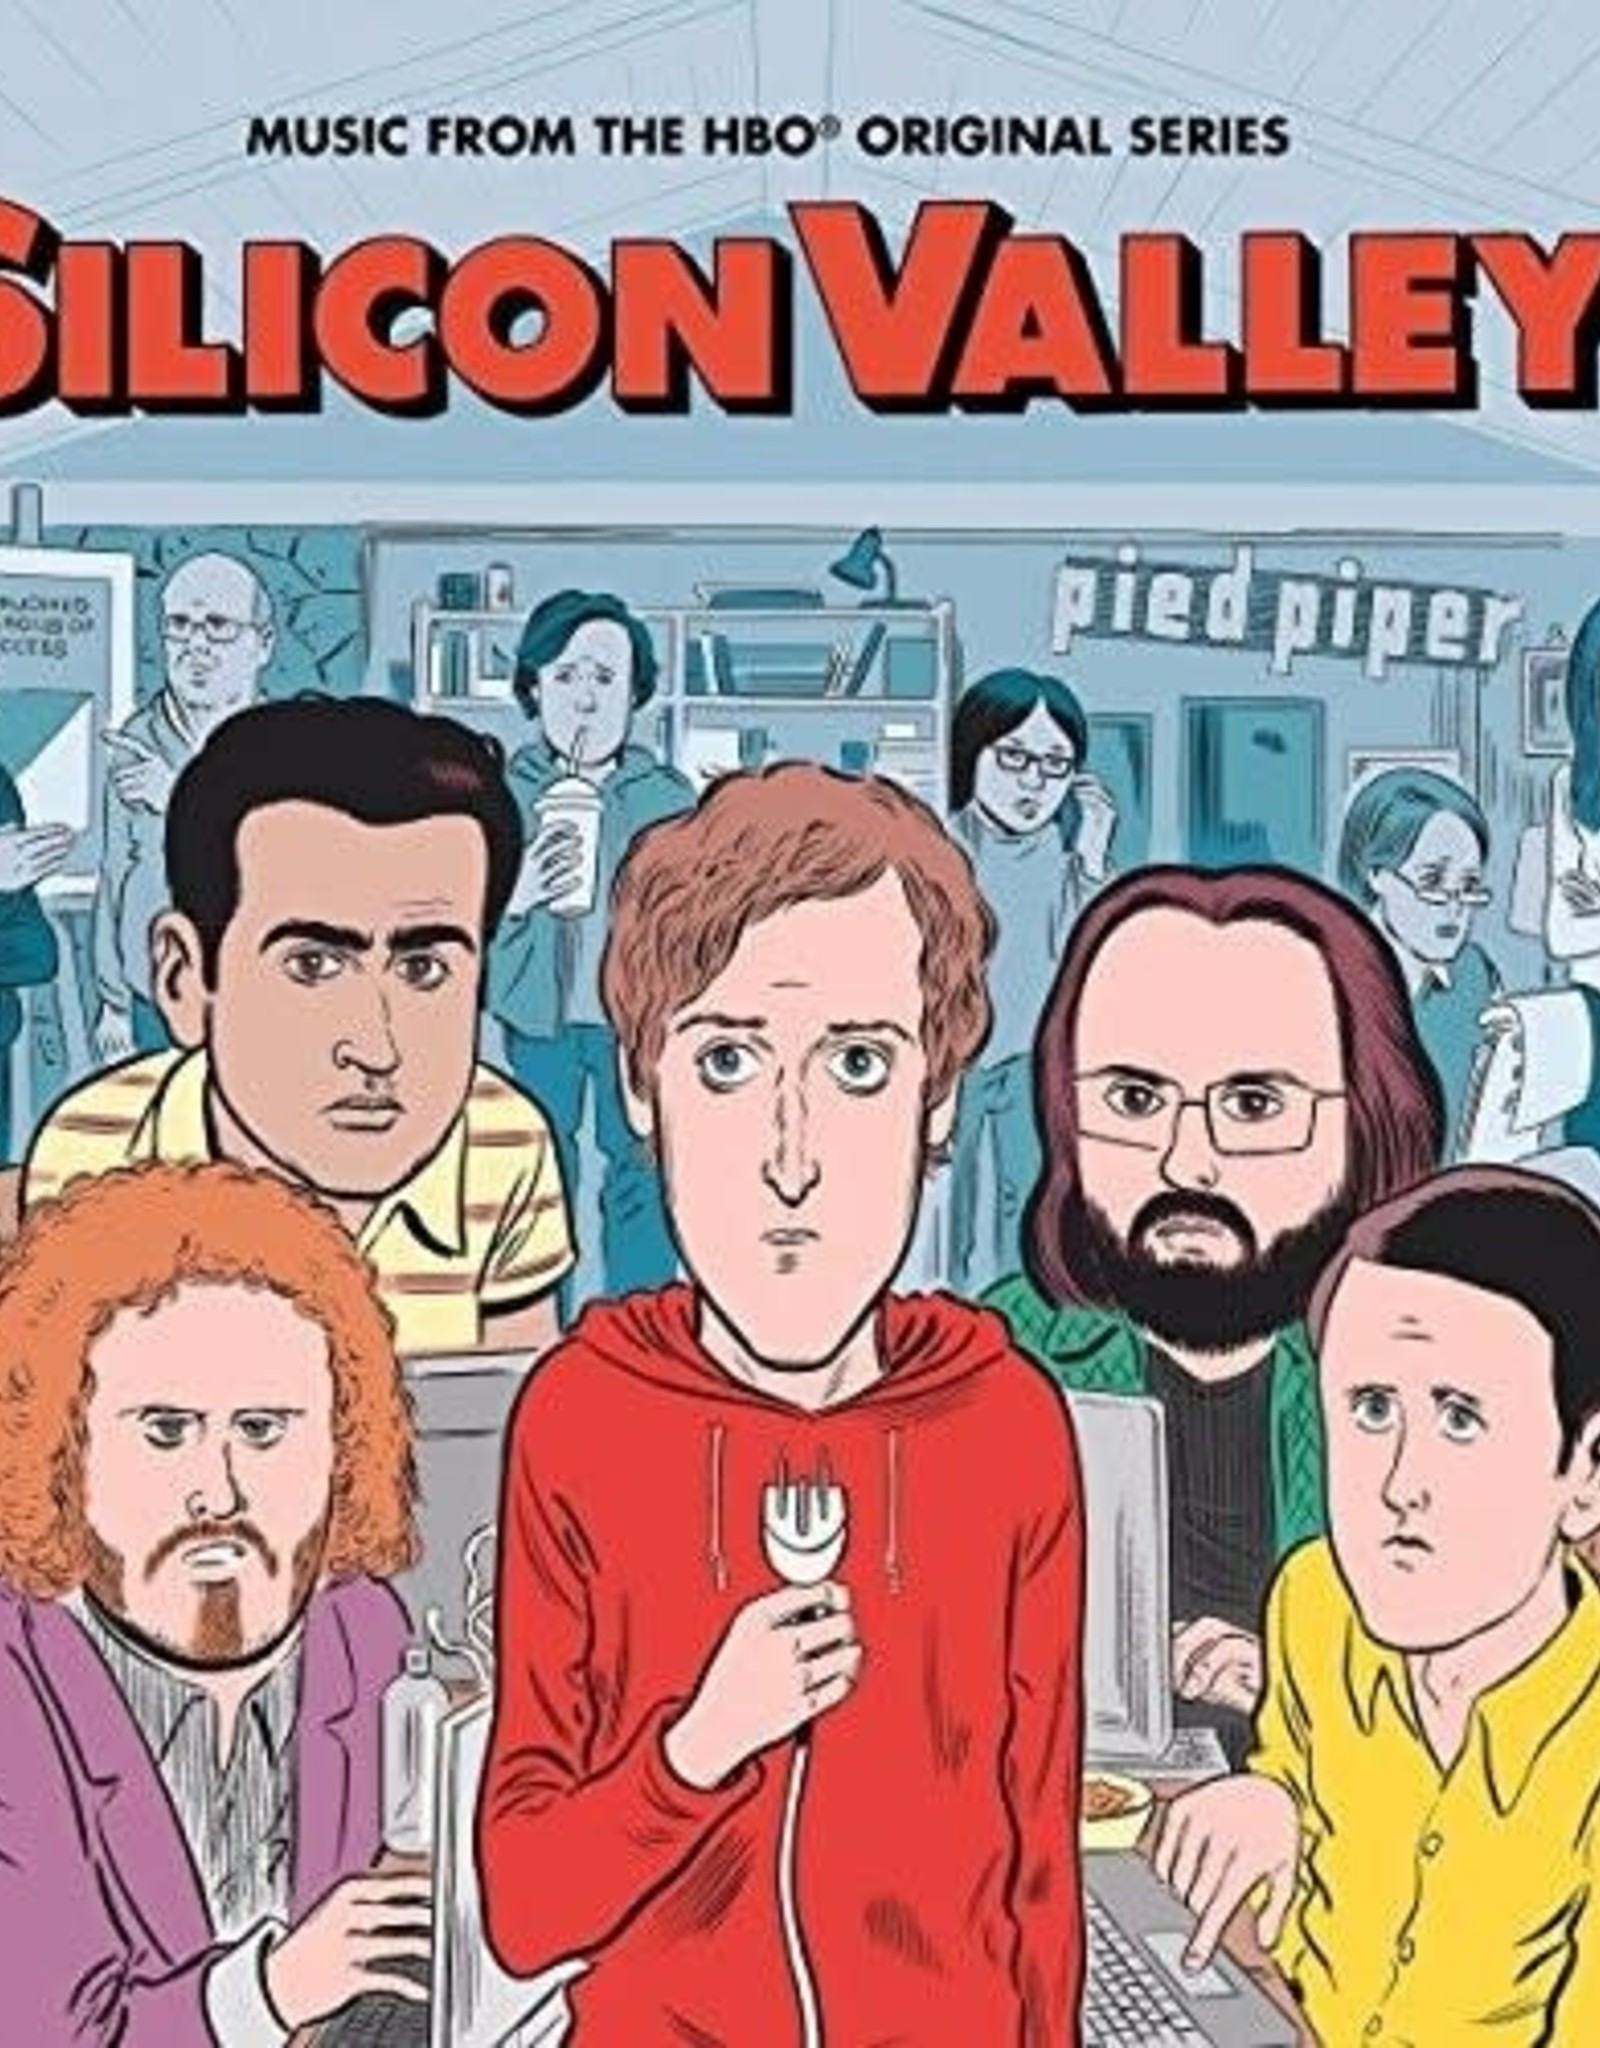 Silicon Valley Ost - Dj Shadow - Too $Hort - Nas - Run The Jewels - Wu-Tang Clan - Danny Brown - Dr. Octagon - Onyx